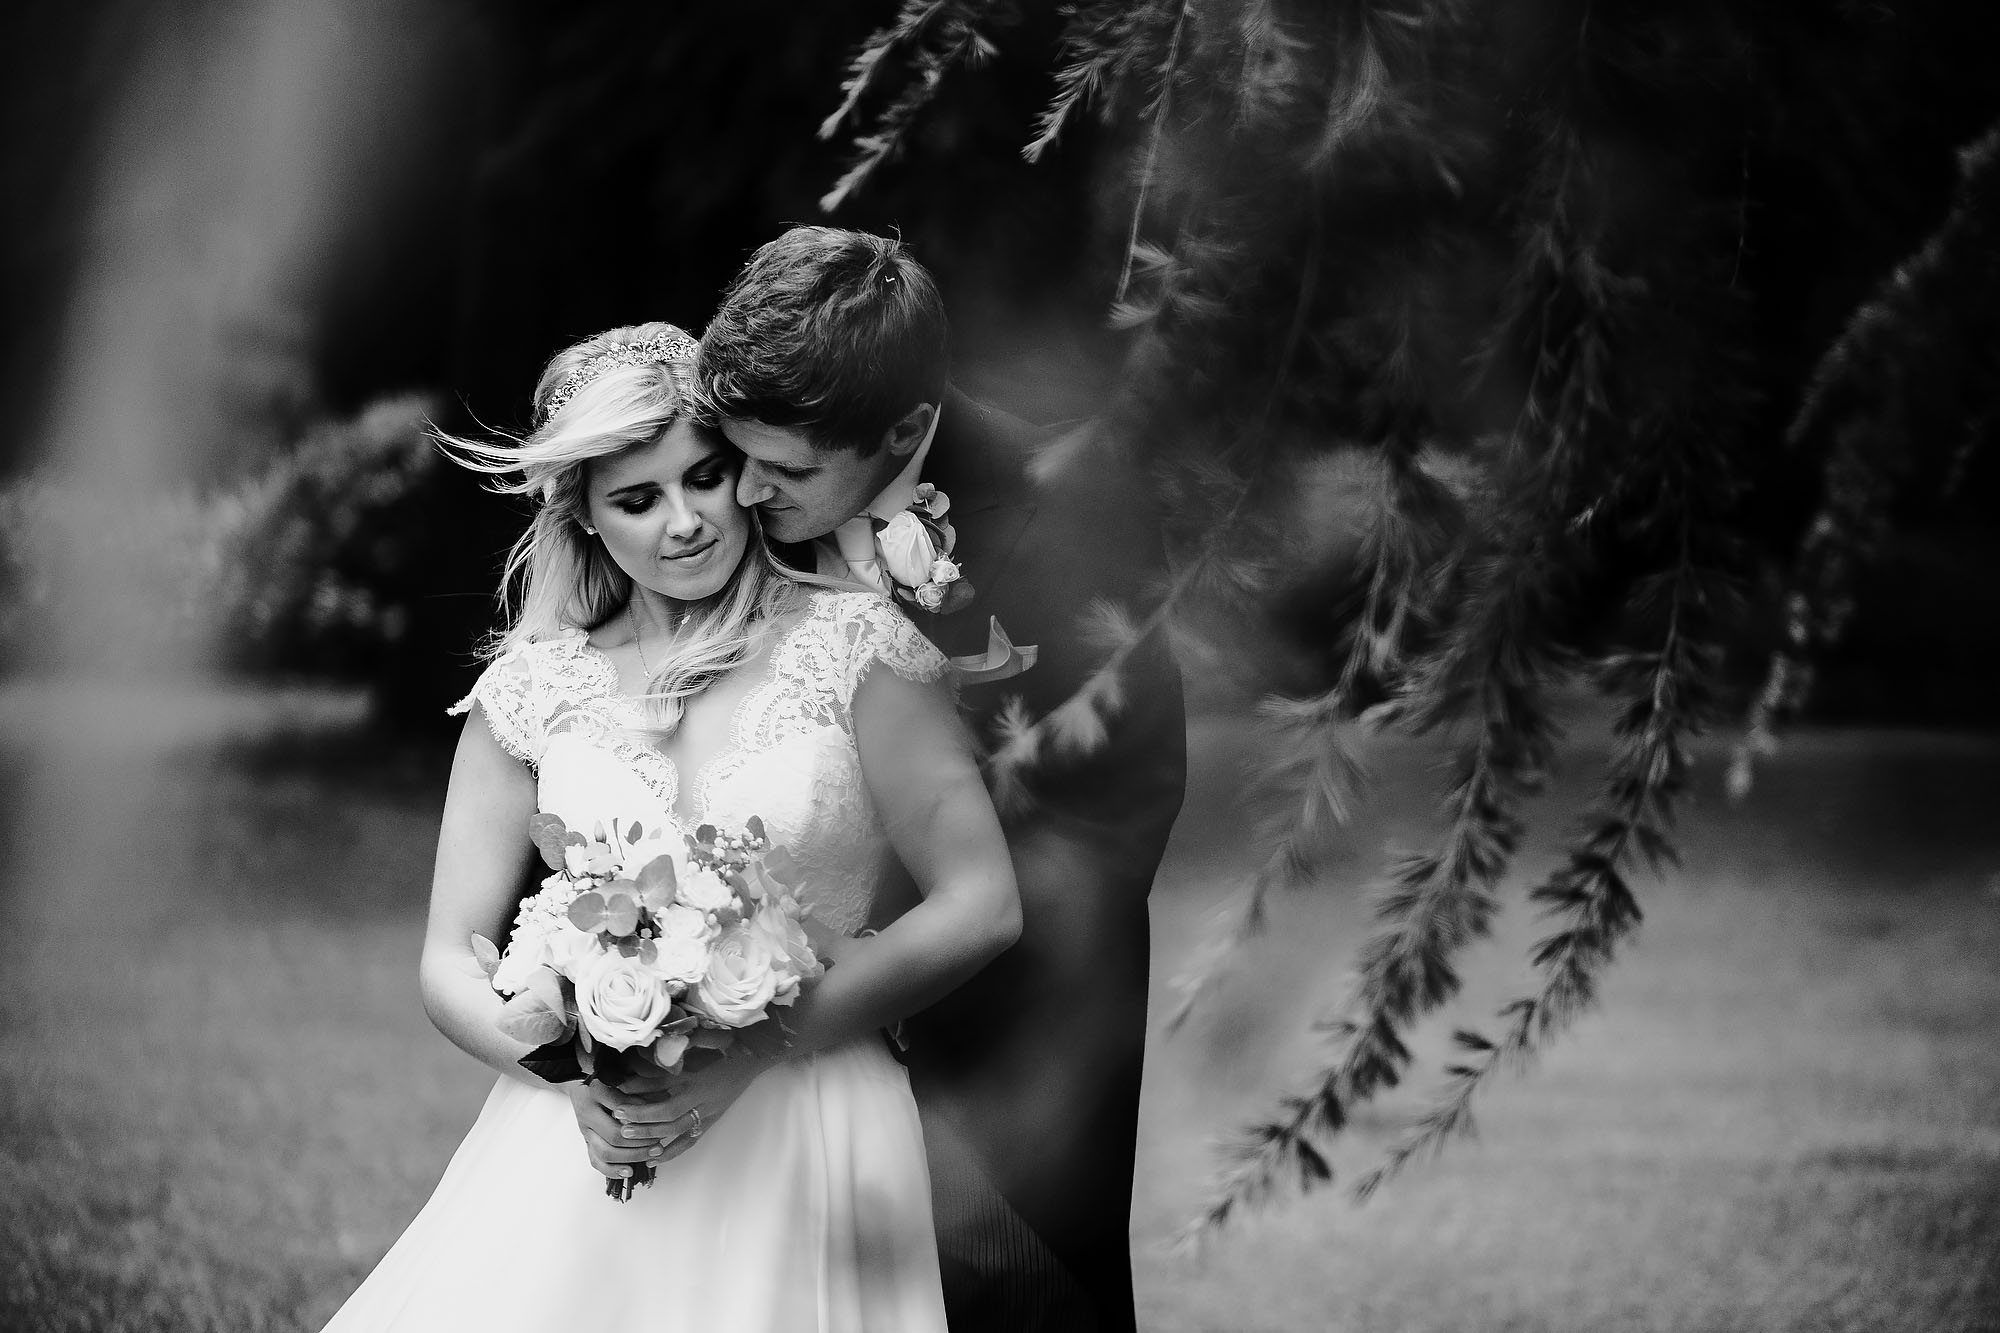 Best Wedding Photography in the world 2019 - ARJ Photography®